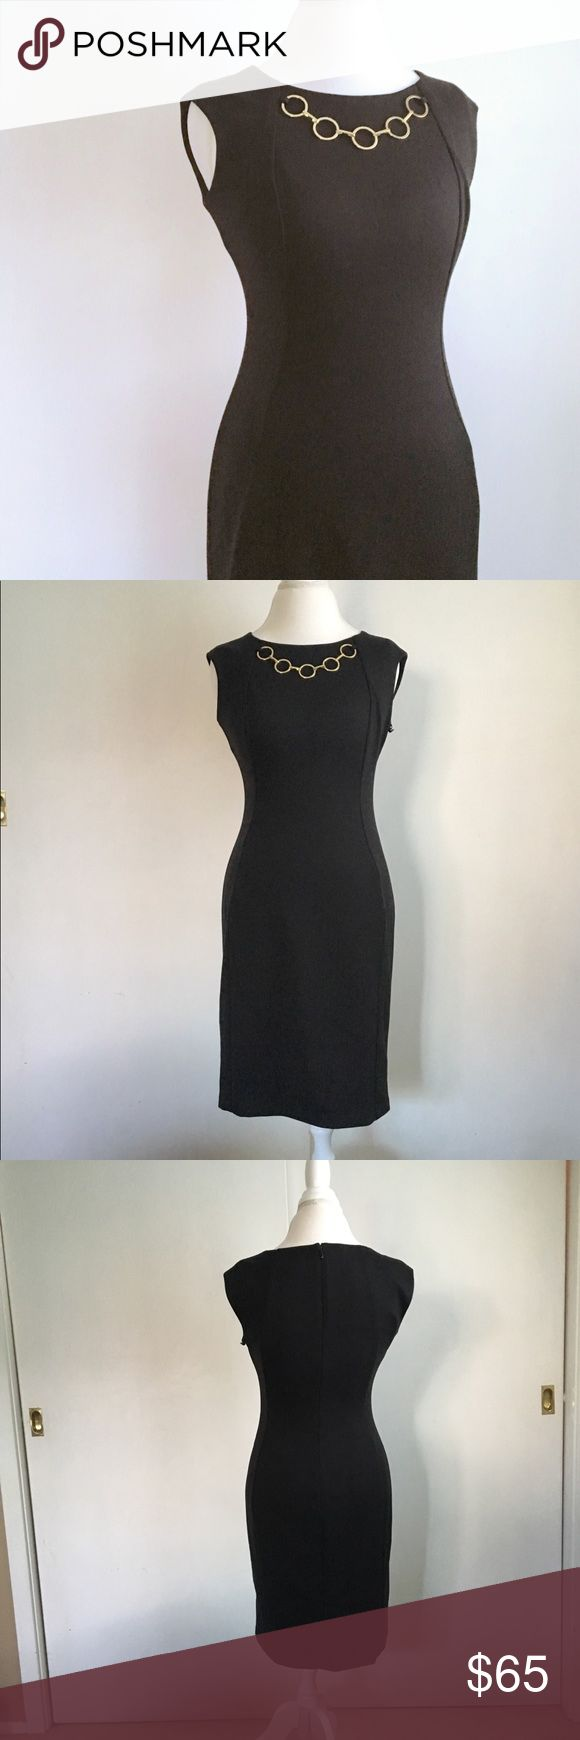 calvin klein dress Gorgeous and incredibly classy Calvin Klein dress. Black Ponte knit (super stretchy, super comfy) with built in faux gold chain necklace. Extremely flattering silhouette. Sleeveless. Kick vent in back. Size 6. Brand new with tags! / dress, Ponte, knit, jersey, stretch, career, work, evening, event, bnwt, NWT / Calvin Klein Dresses